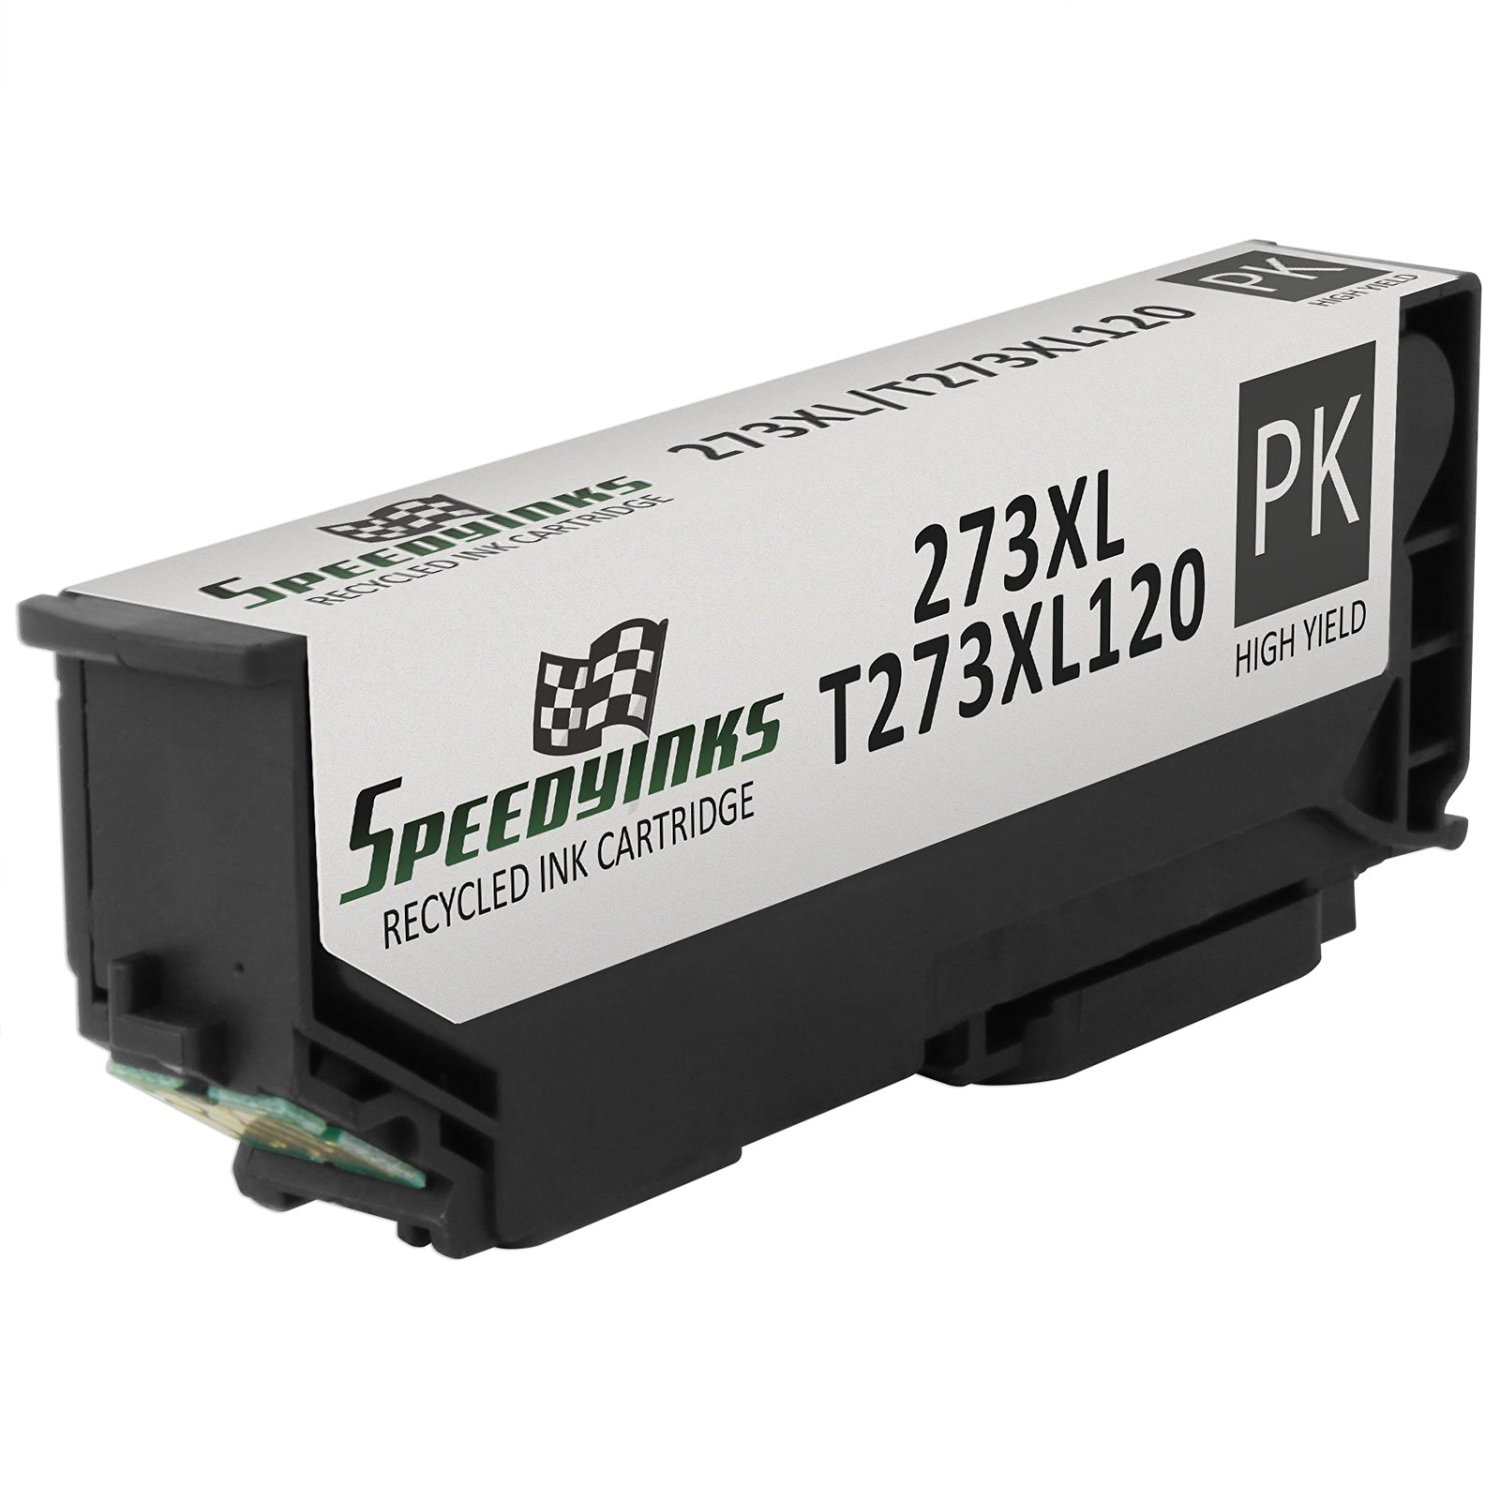 Speedy Inks - Remanufactured High Yield Photo Black Ink for Epson T273XL 273XL TT273XL120for use in Epson Expression XP-600 Small-in-One, XP-800 Small-in-One, Premium XP-610 Small-in-One, Premium XP-810 Small-in-One, Premium XP-520 Small-in-One, Premium XP-620 Small-in-One, Premium XP-820